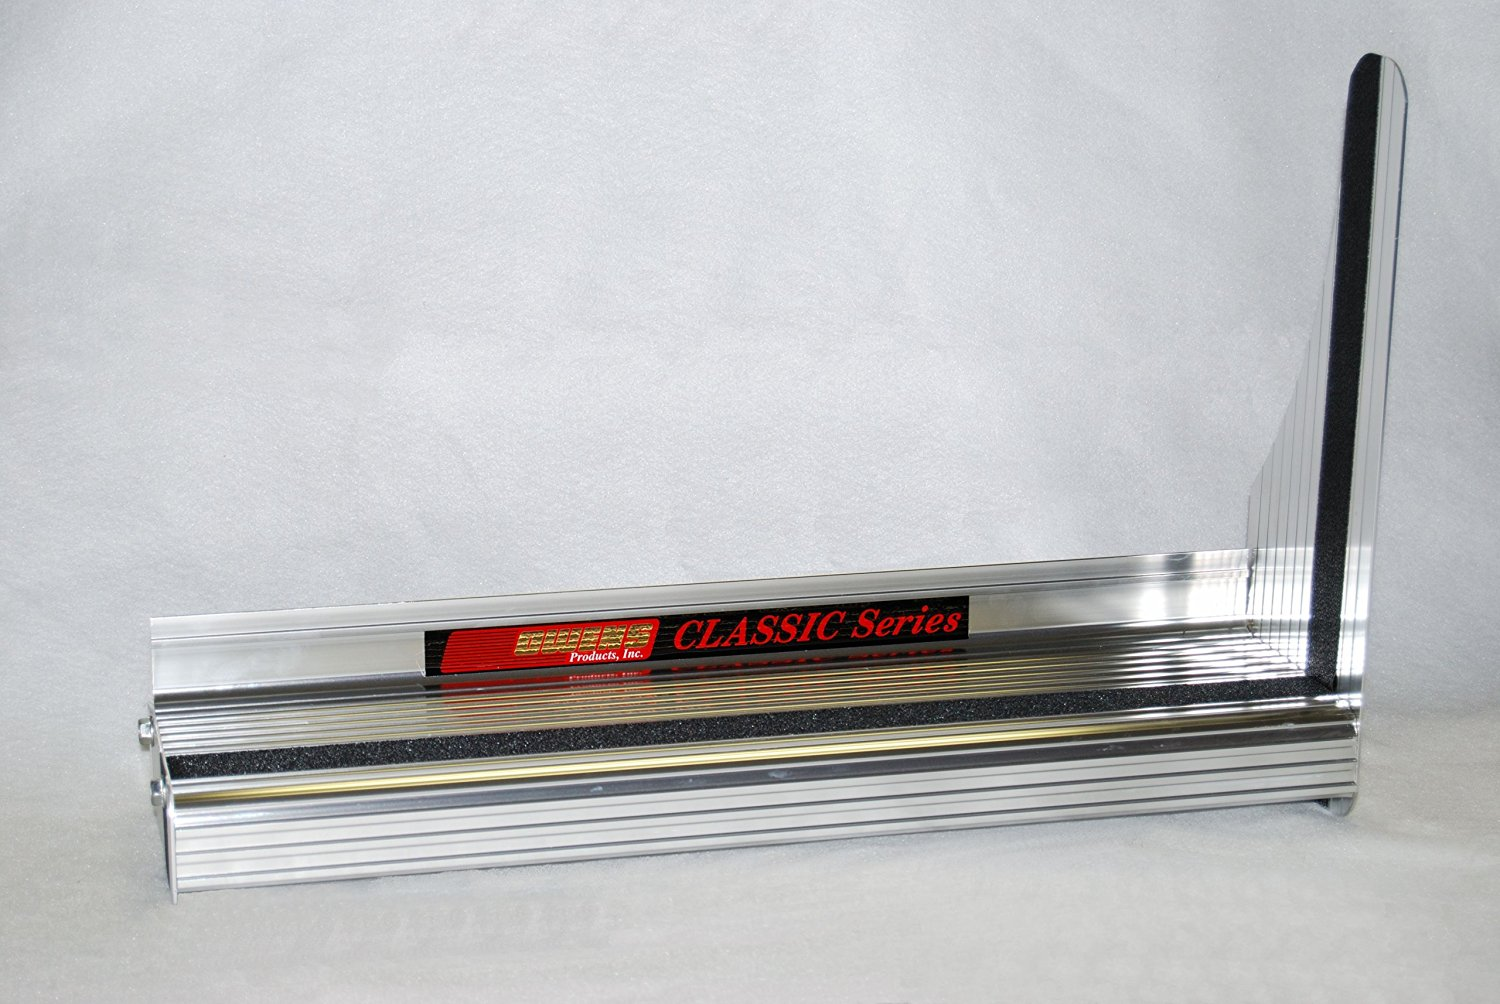 OWENS Running Board Classic Pro Silver Extruded Aluminum Unlighted Body/ Frame M OC70120FX